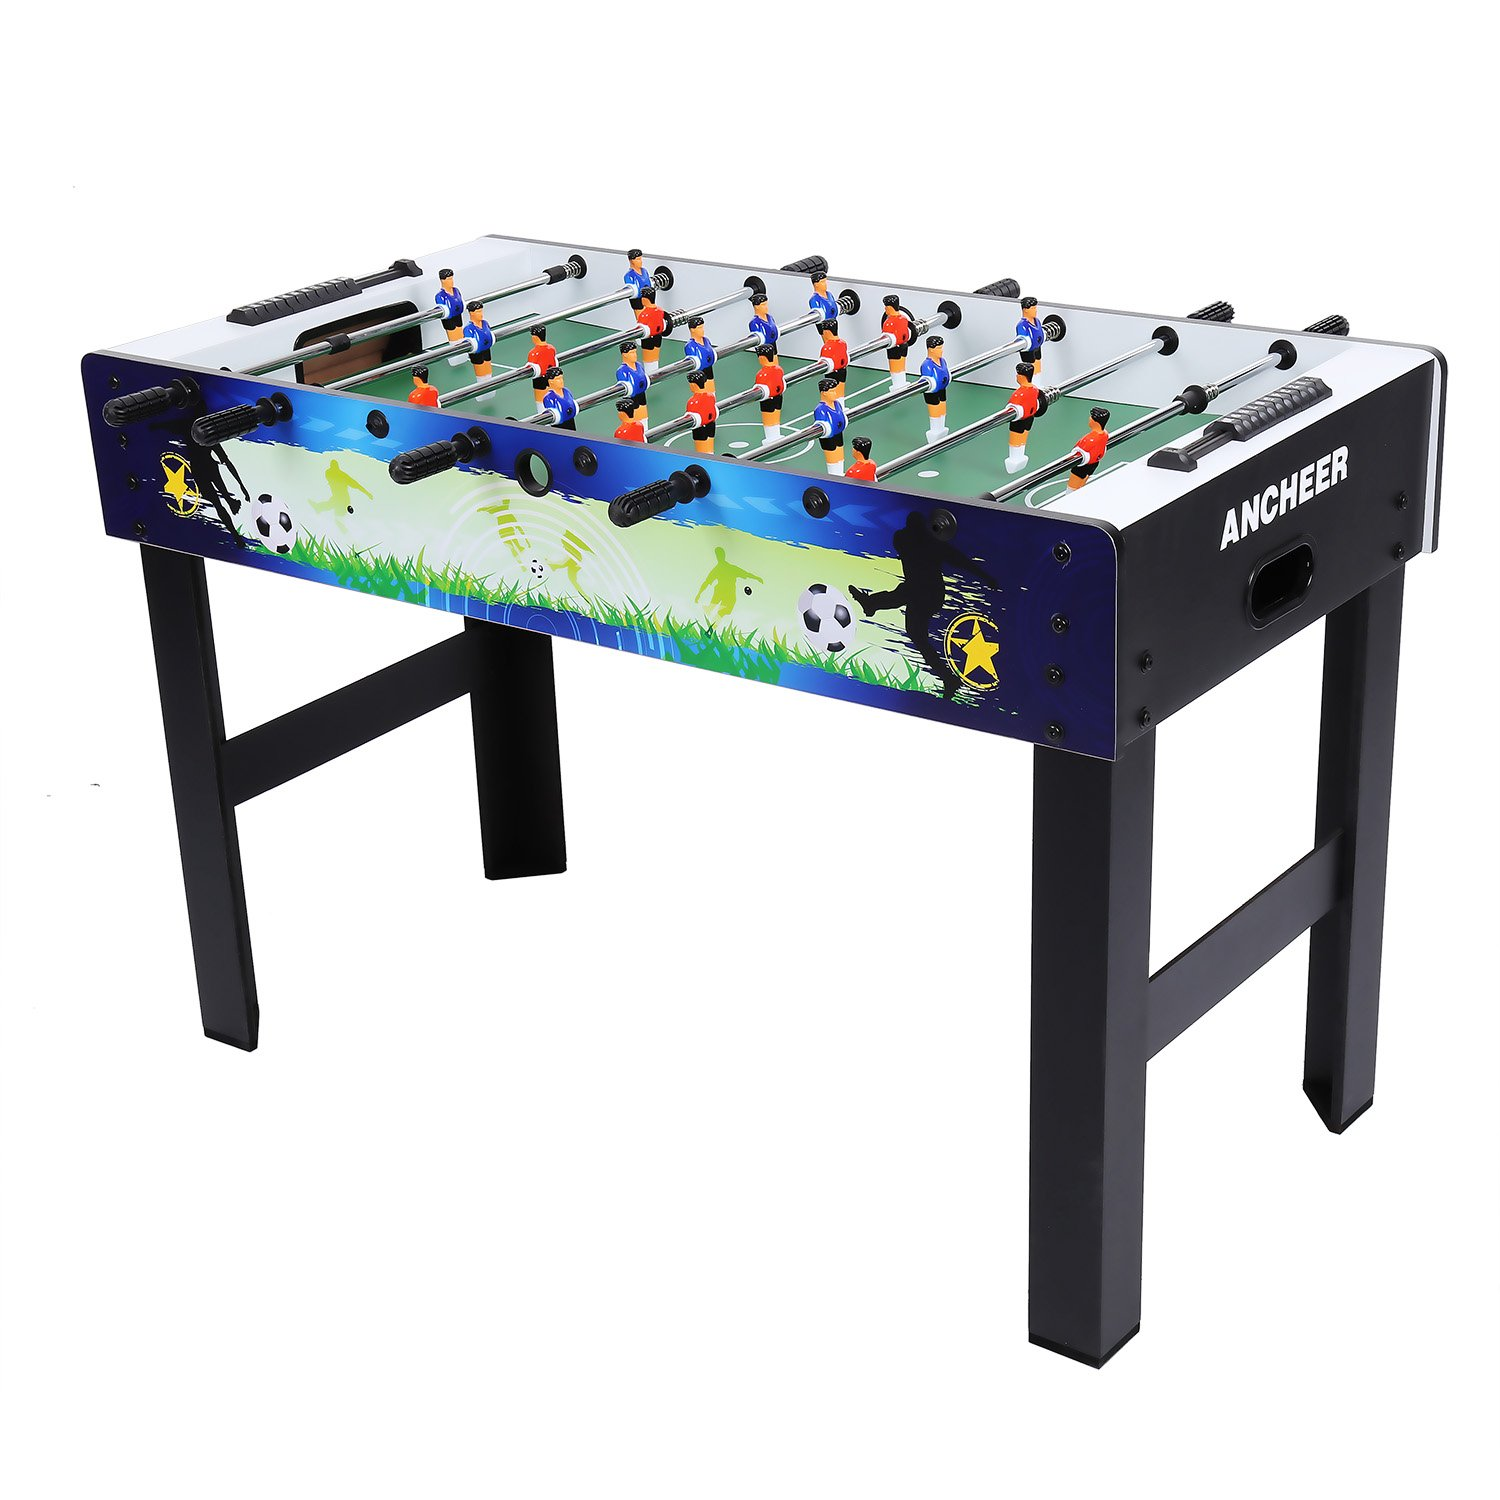 ANCHEER 48'' Foosball Table Soccer Table Arcade Game Room Football Table Sports Game for Kids& Adults- Indoor&Outdoor by ANCHEER (Image #1)